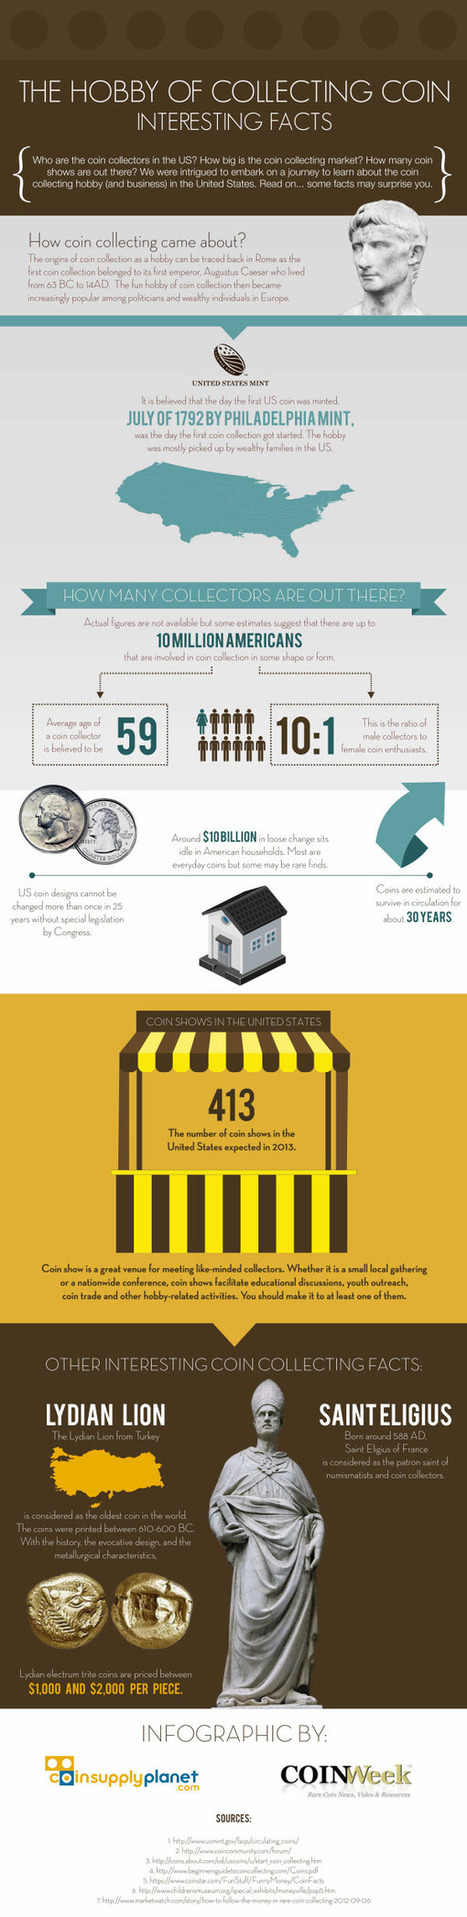 Hobby of Collecting Coins - How & Where to Sell? | Infographics | All Infographics | Scoop.it